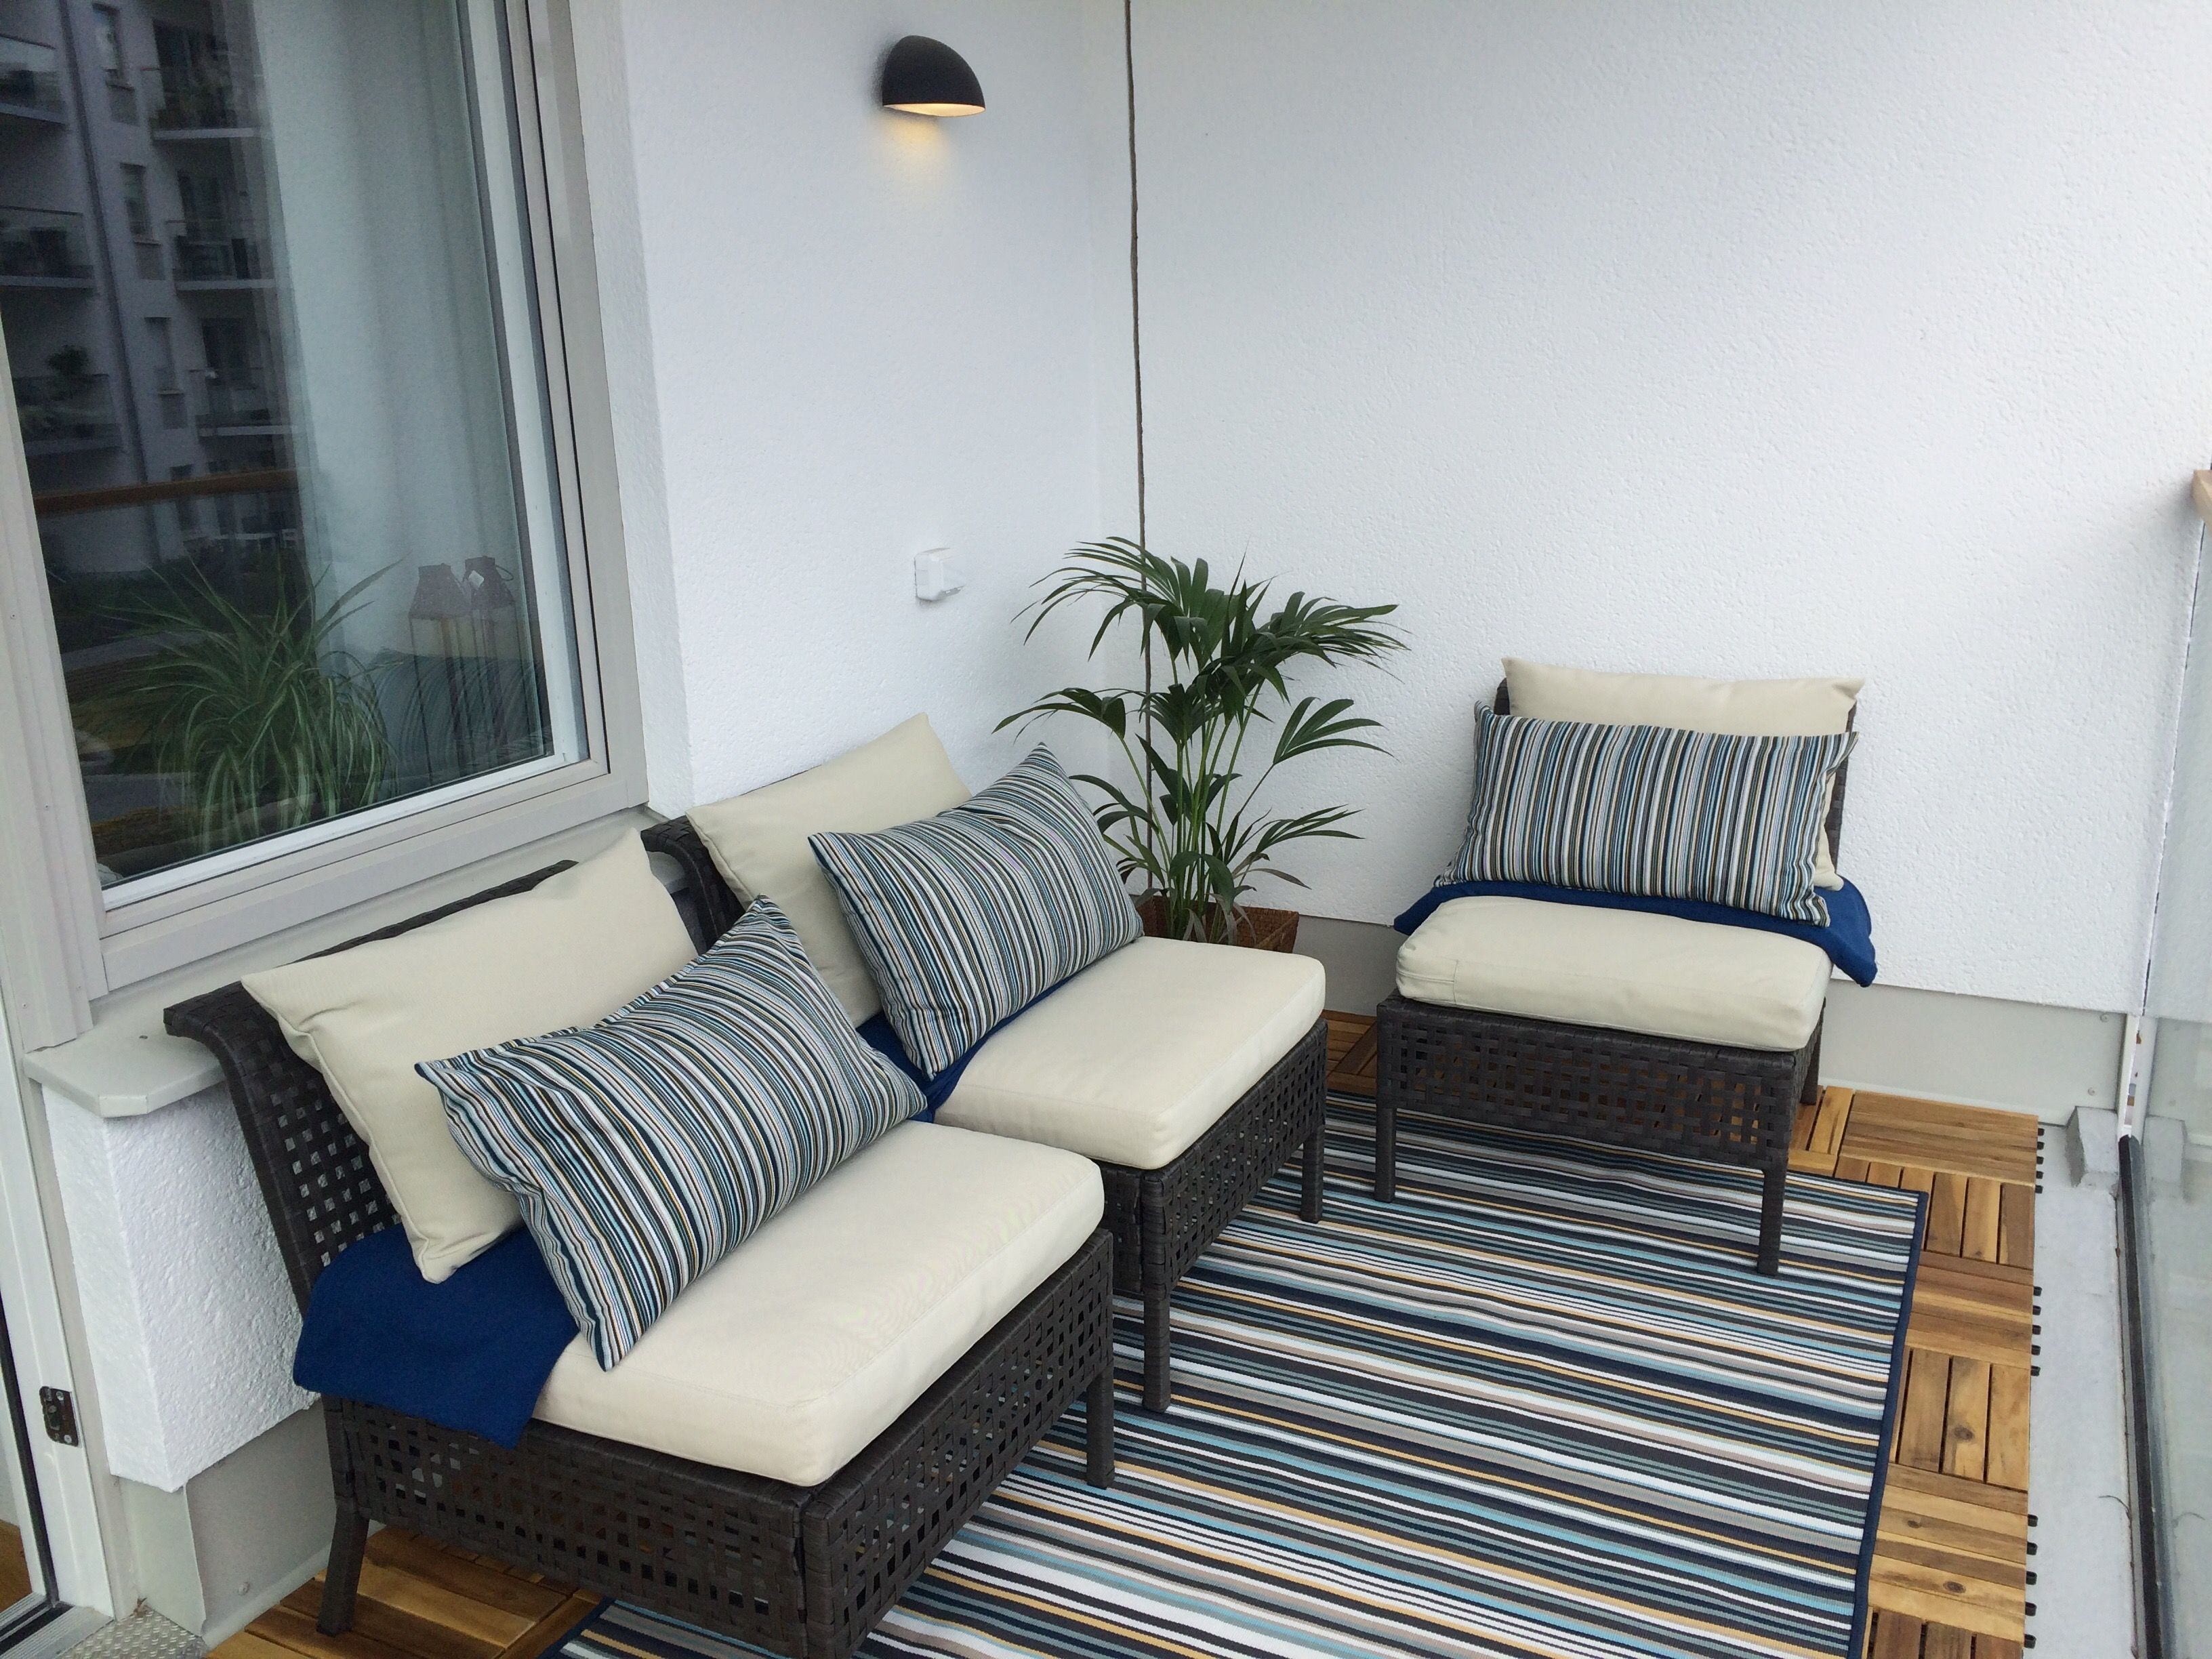 My Very Own Balcony By Ikea Three Kungsholmen Sections In Dark Brown With HÅllÖ Cushions In Bei Furniture Design Outdoor Sectional Sofa Outdoor Furniture Sets